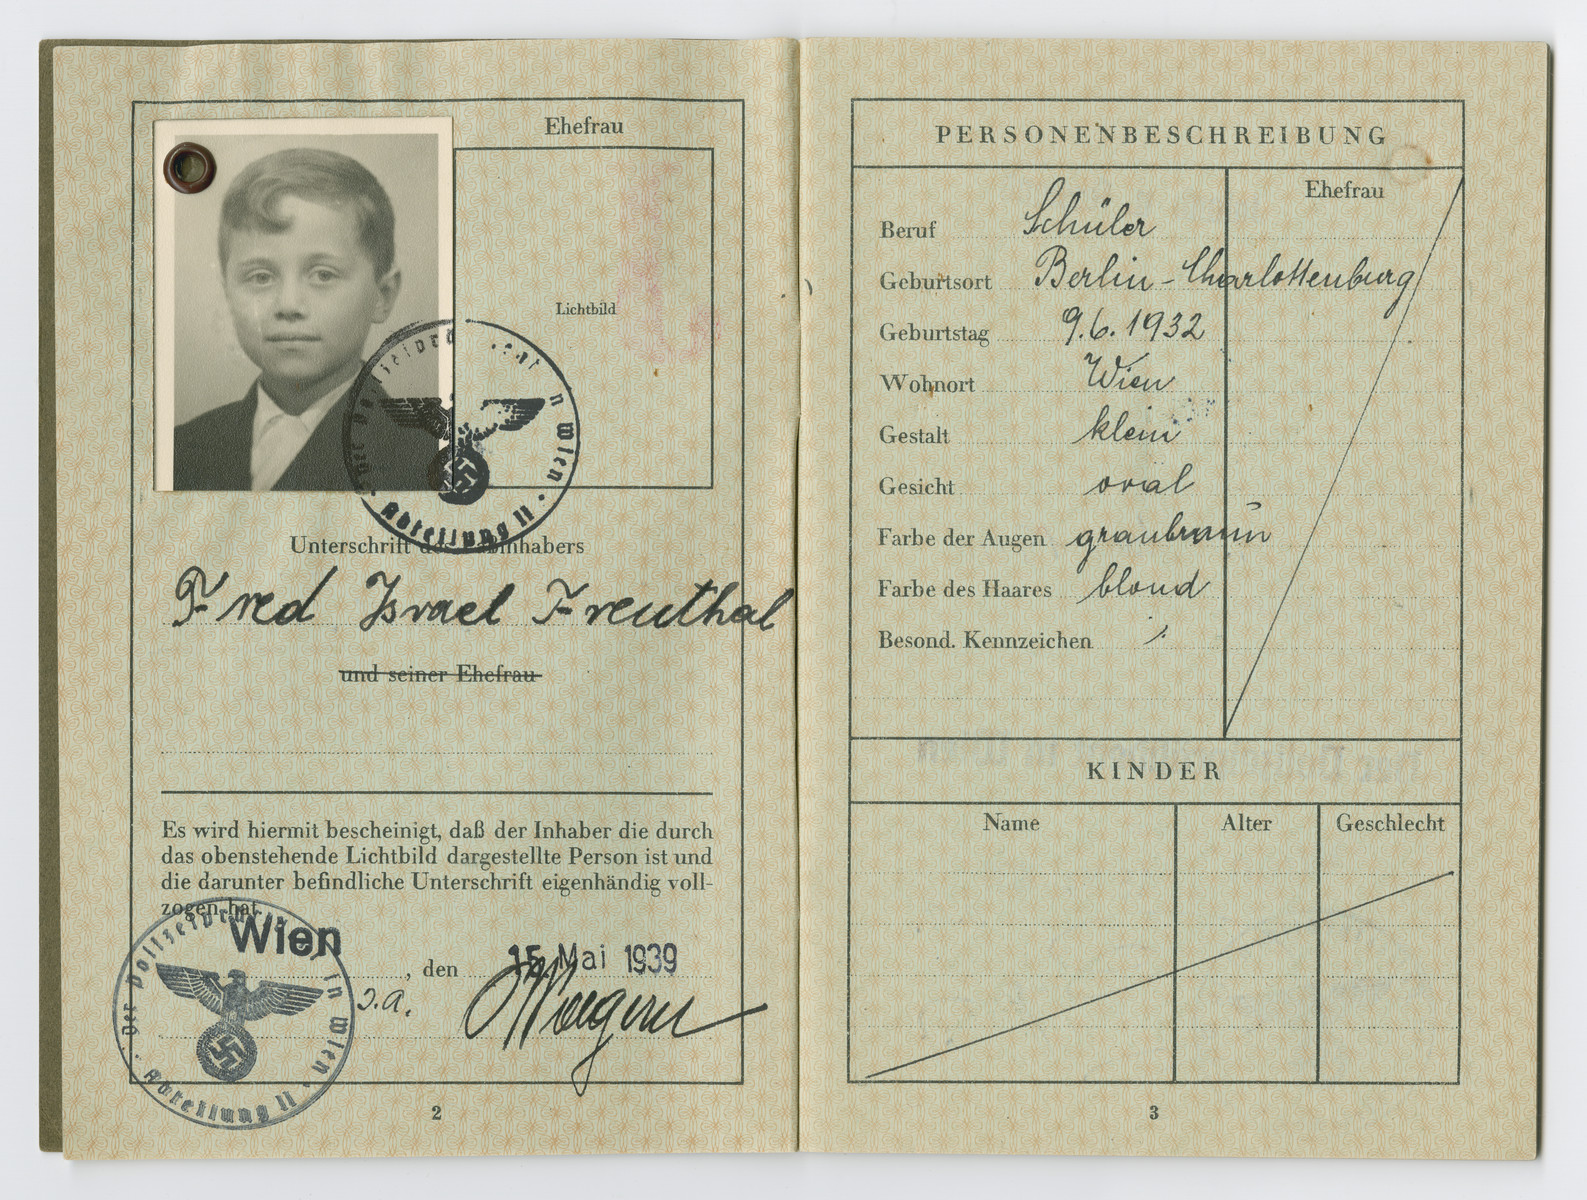 Identification papers issued to Fred Freuthal, born June 1932.